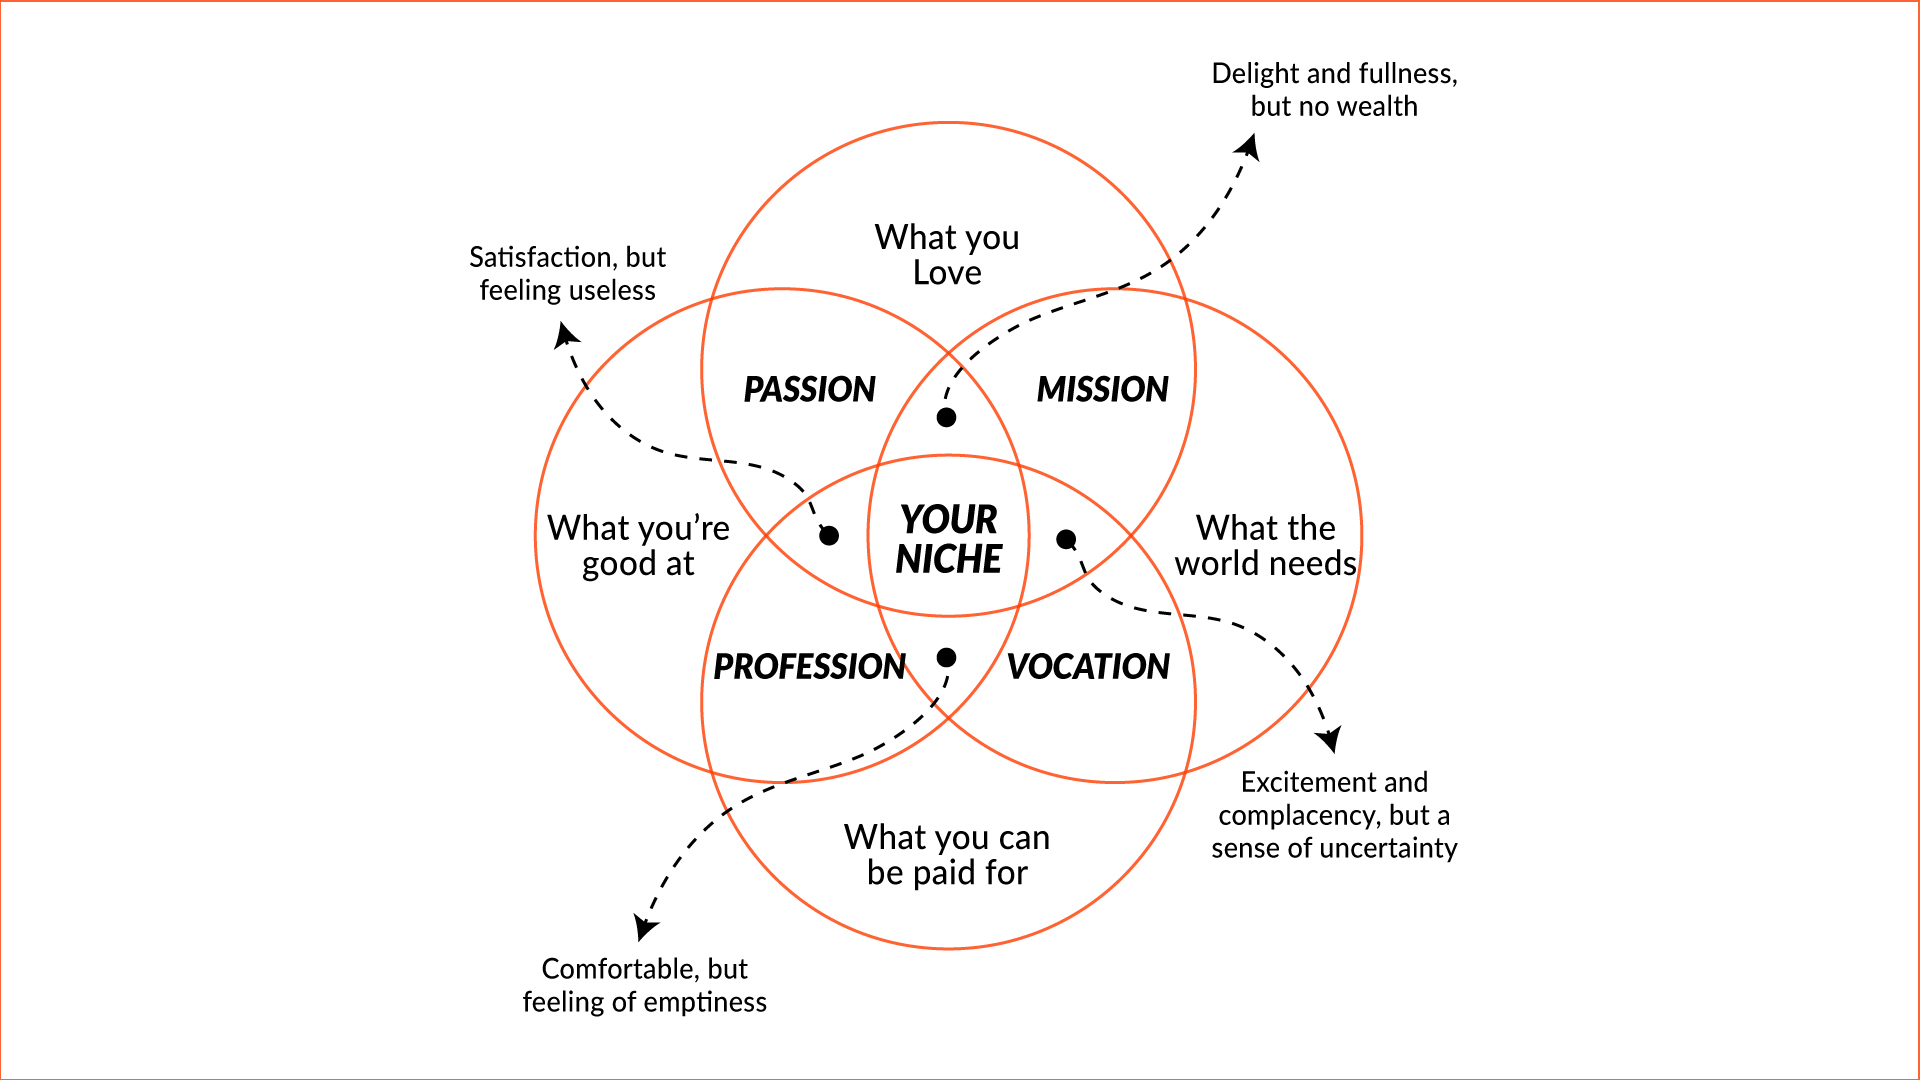 A diagram of ikigai that will help you find your niche